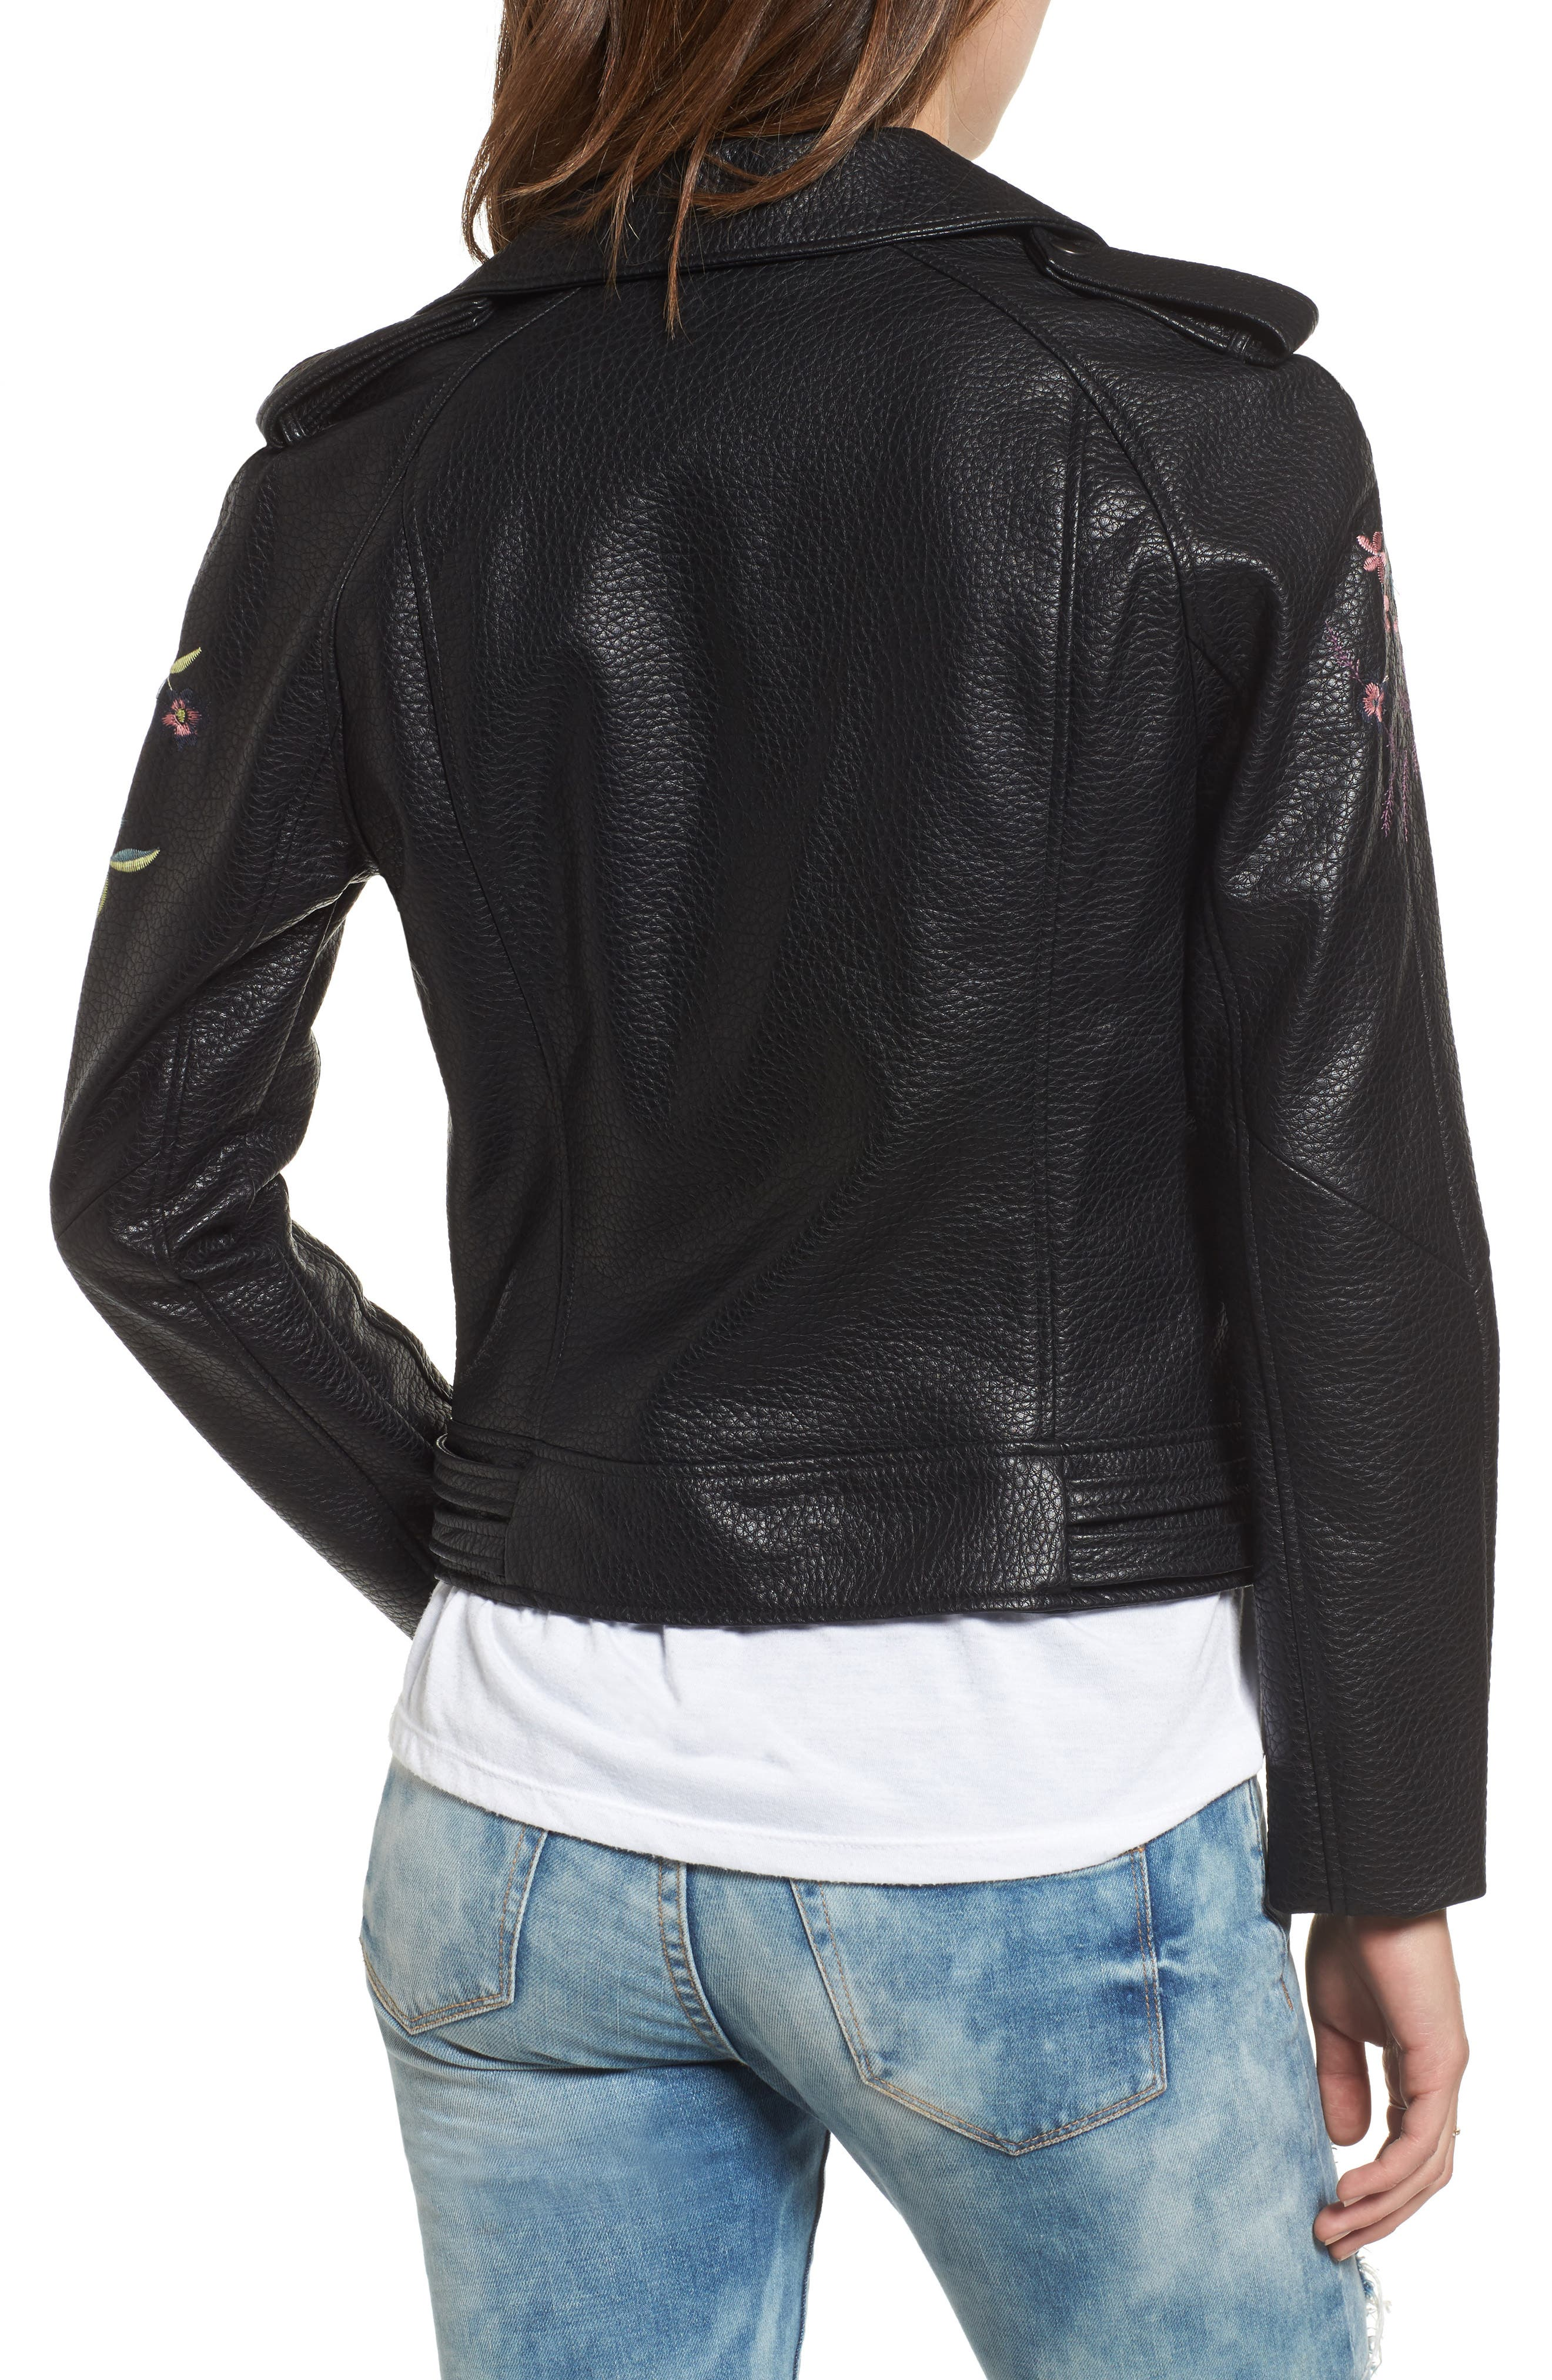 Baxley Embroidered Faux Leather Moto Jacket,                             Alternate thumbnail 2, color,                             Black